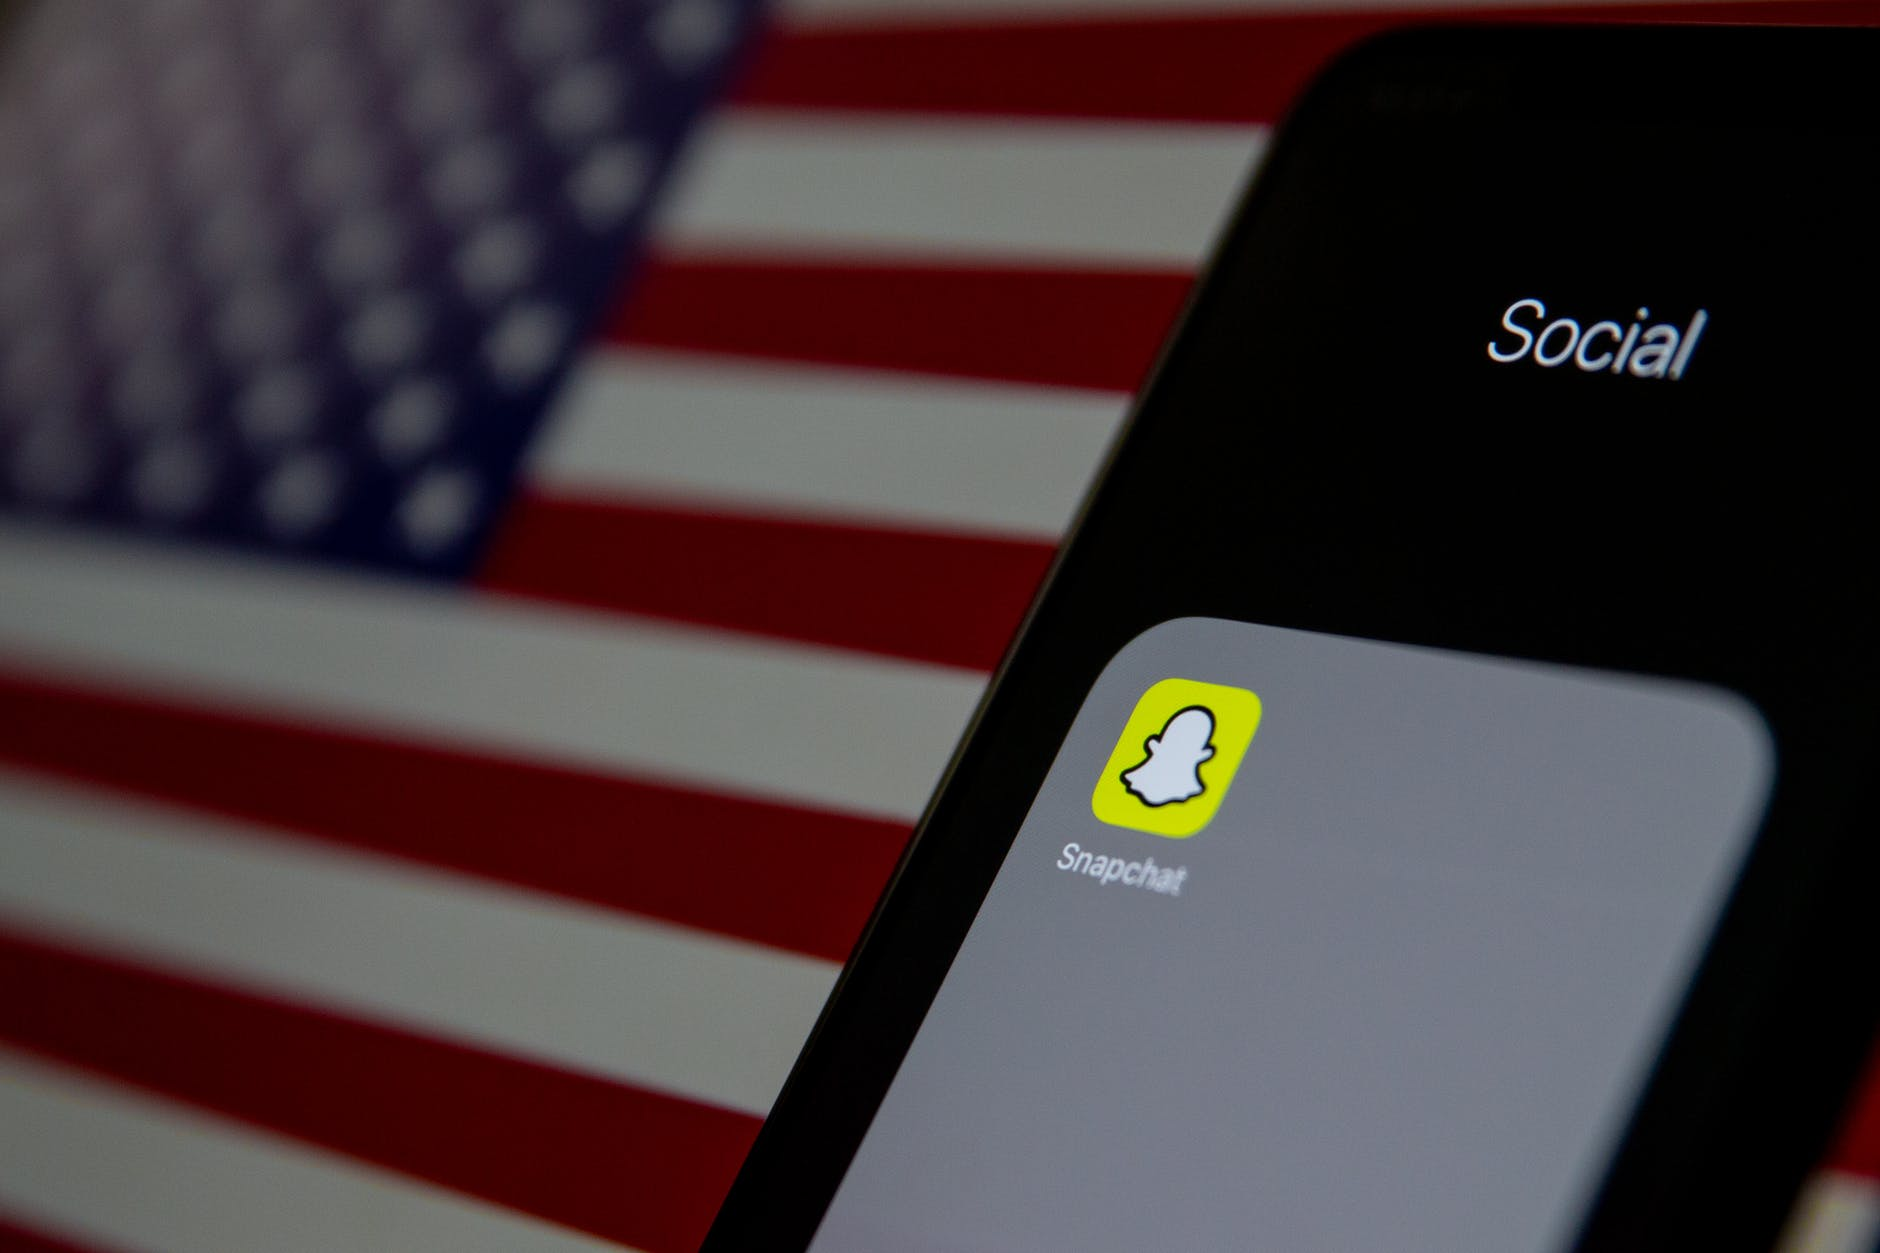 Snap Inc (SNAP) beats earnings expectations, shares up 34%